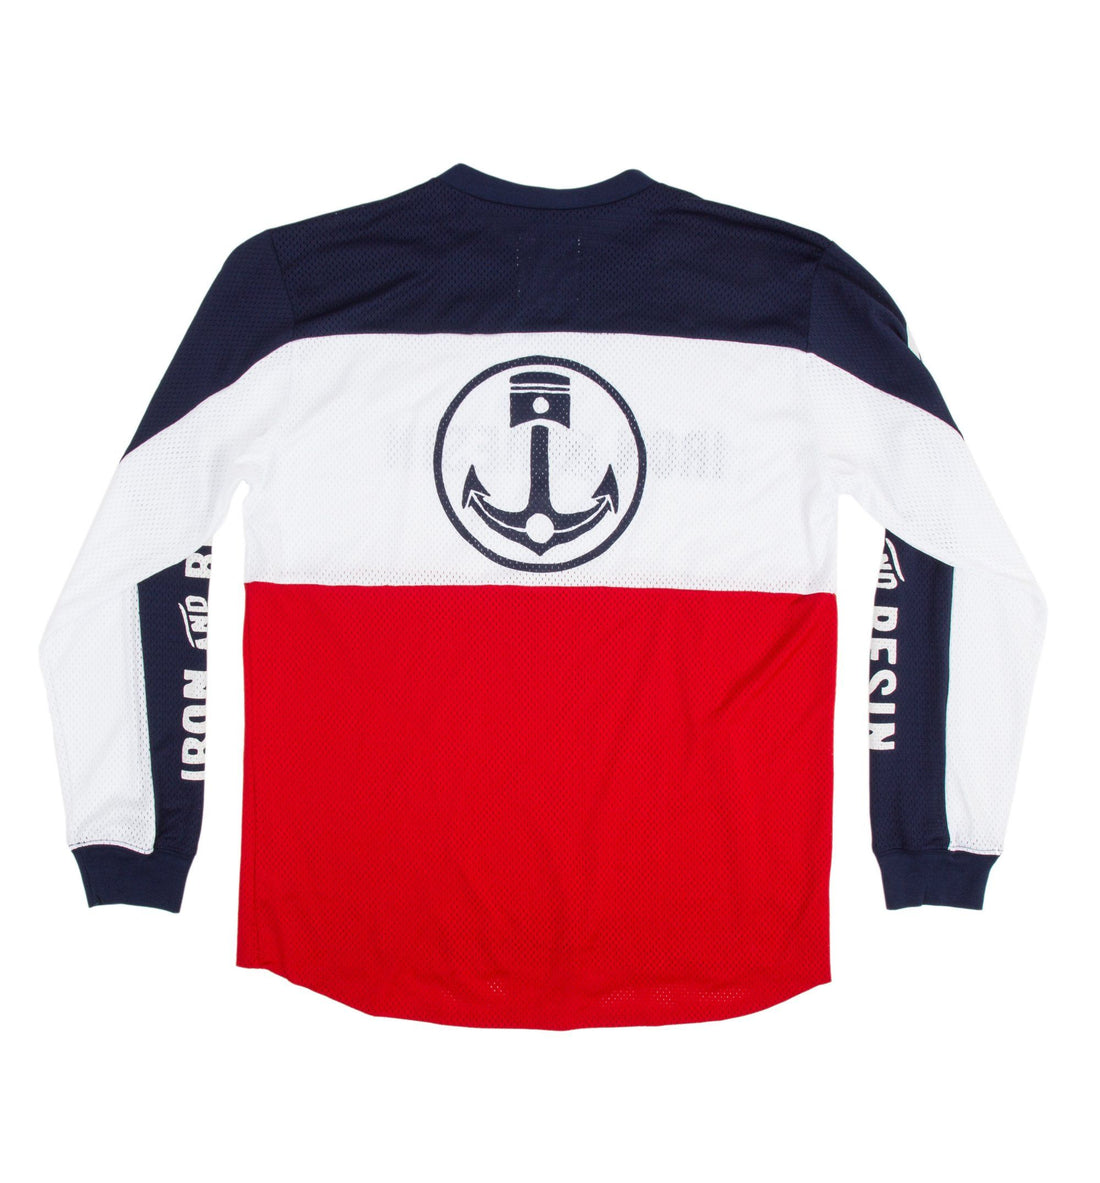 Nationals Jersey - Tops - Iron and Resin